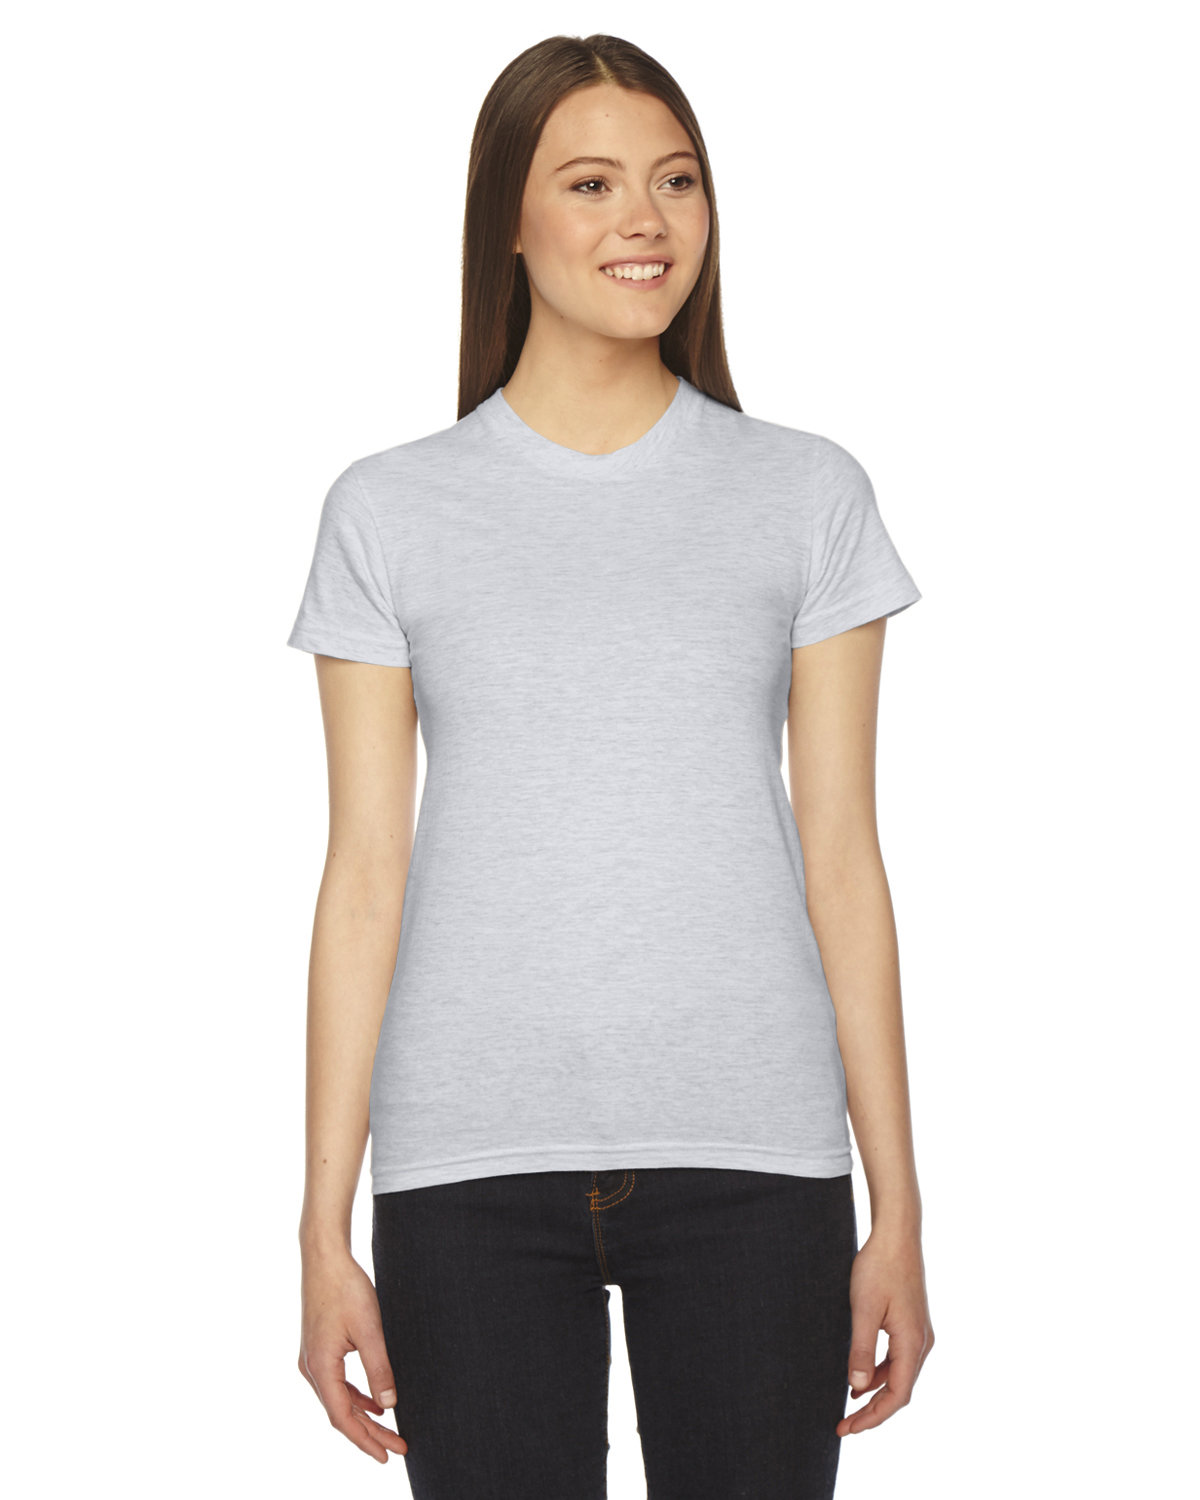 American Apparel Ladies' Fine Jersey Short-Sleeve T-Shirt ASH GREY